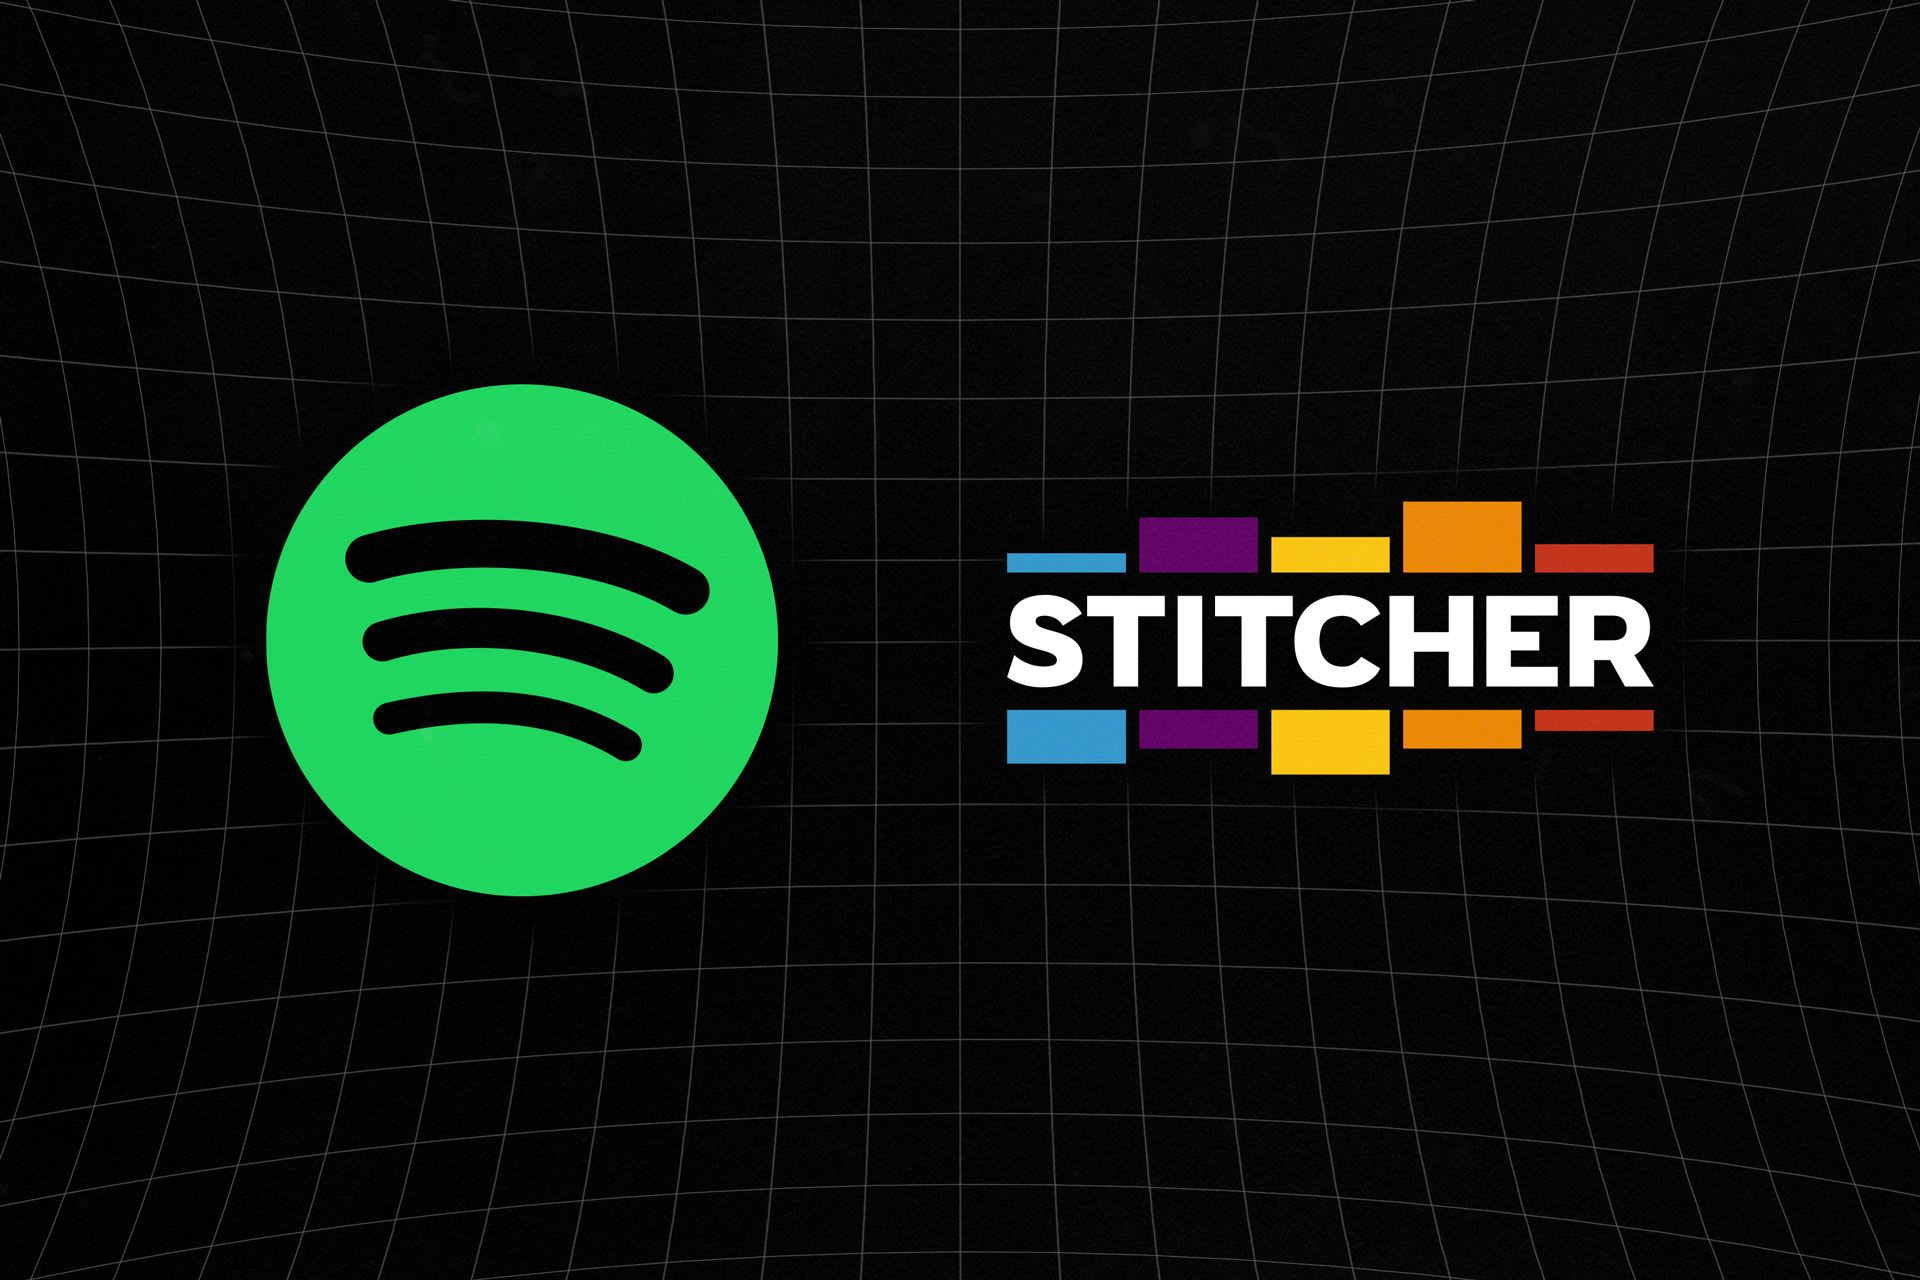 Spotify and Stitcher badges for everyone!